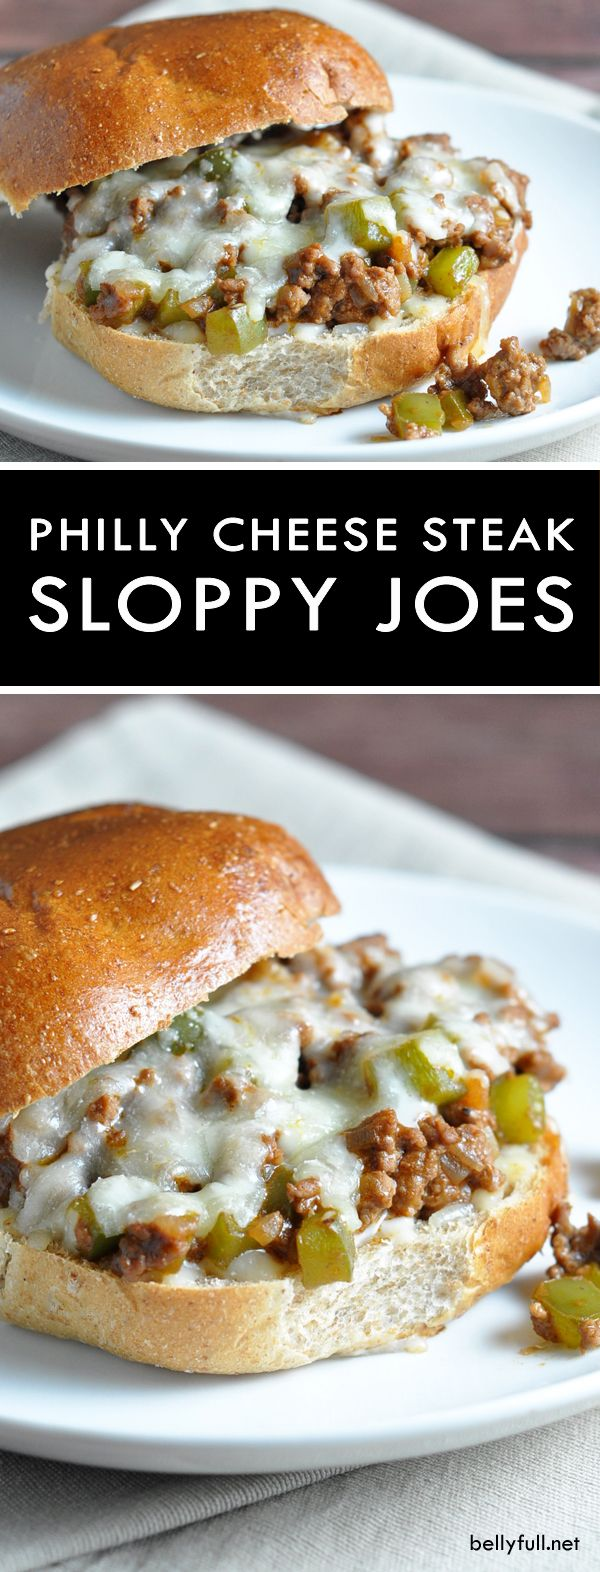 Philly Cheese Steak Sloppy Joes #easydinners